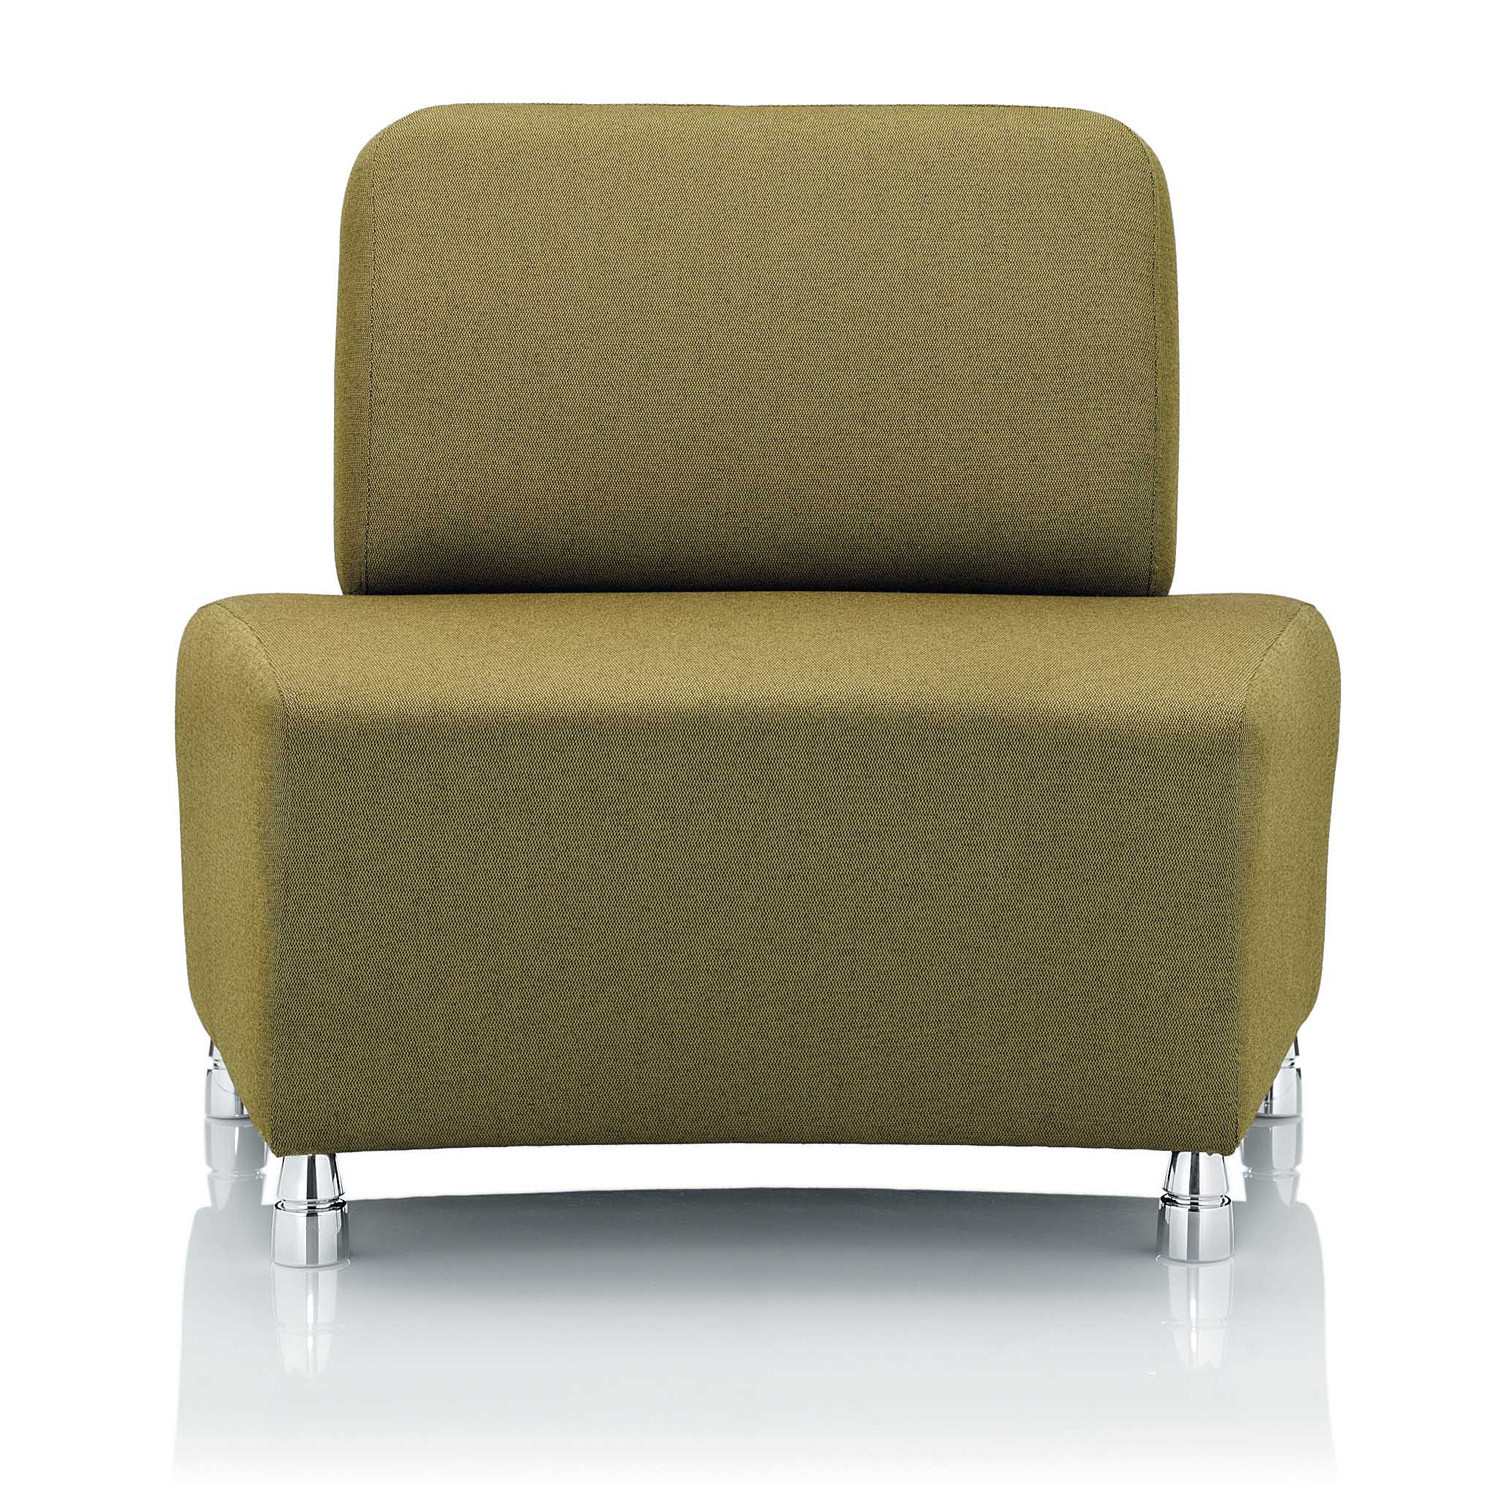 Adda Soft Seating with backrest